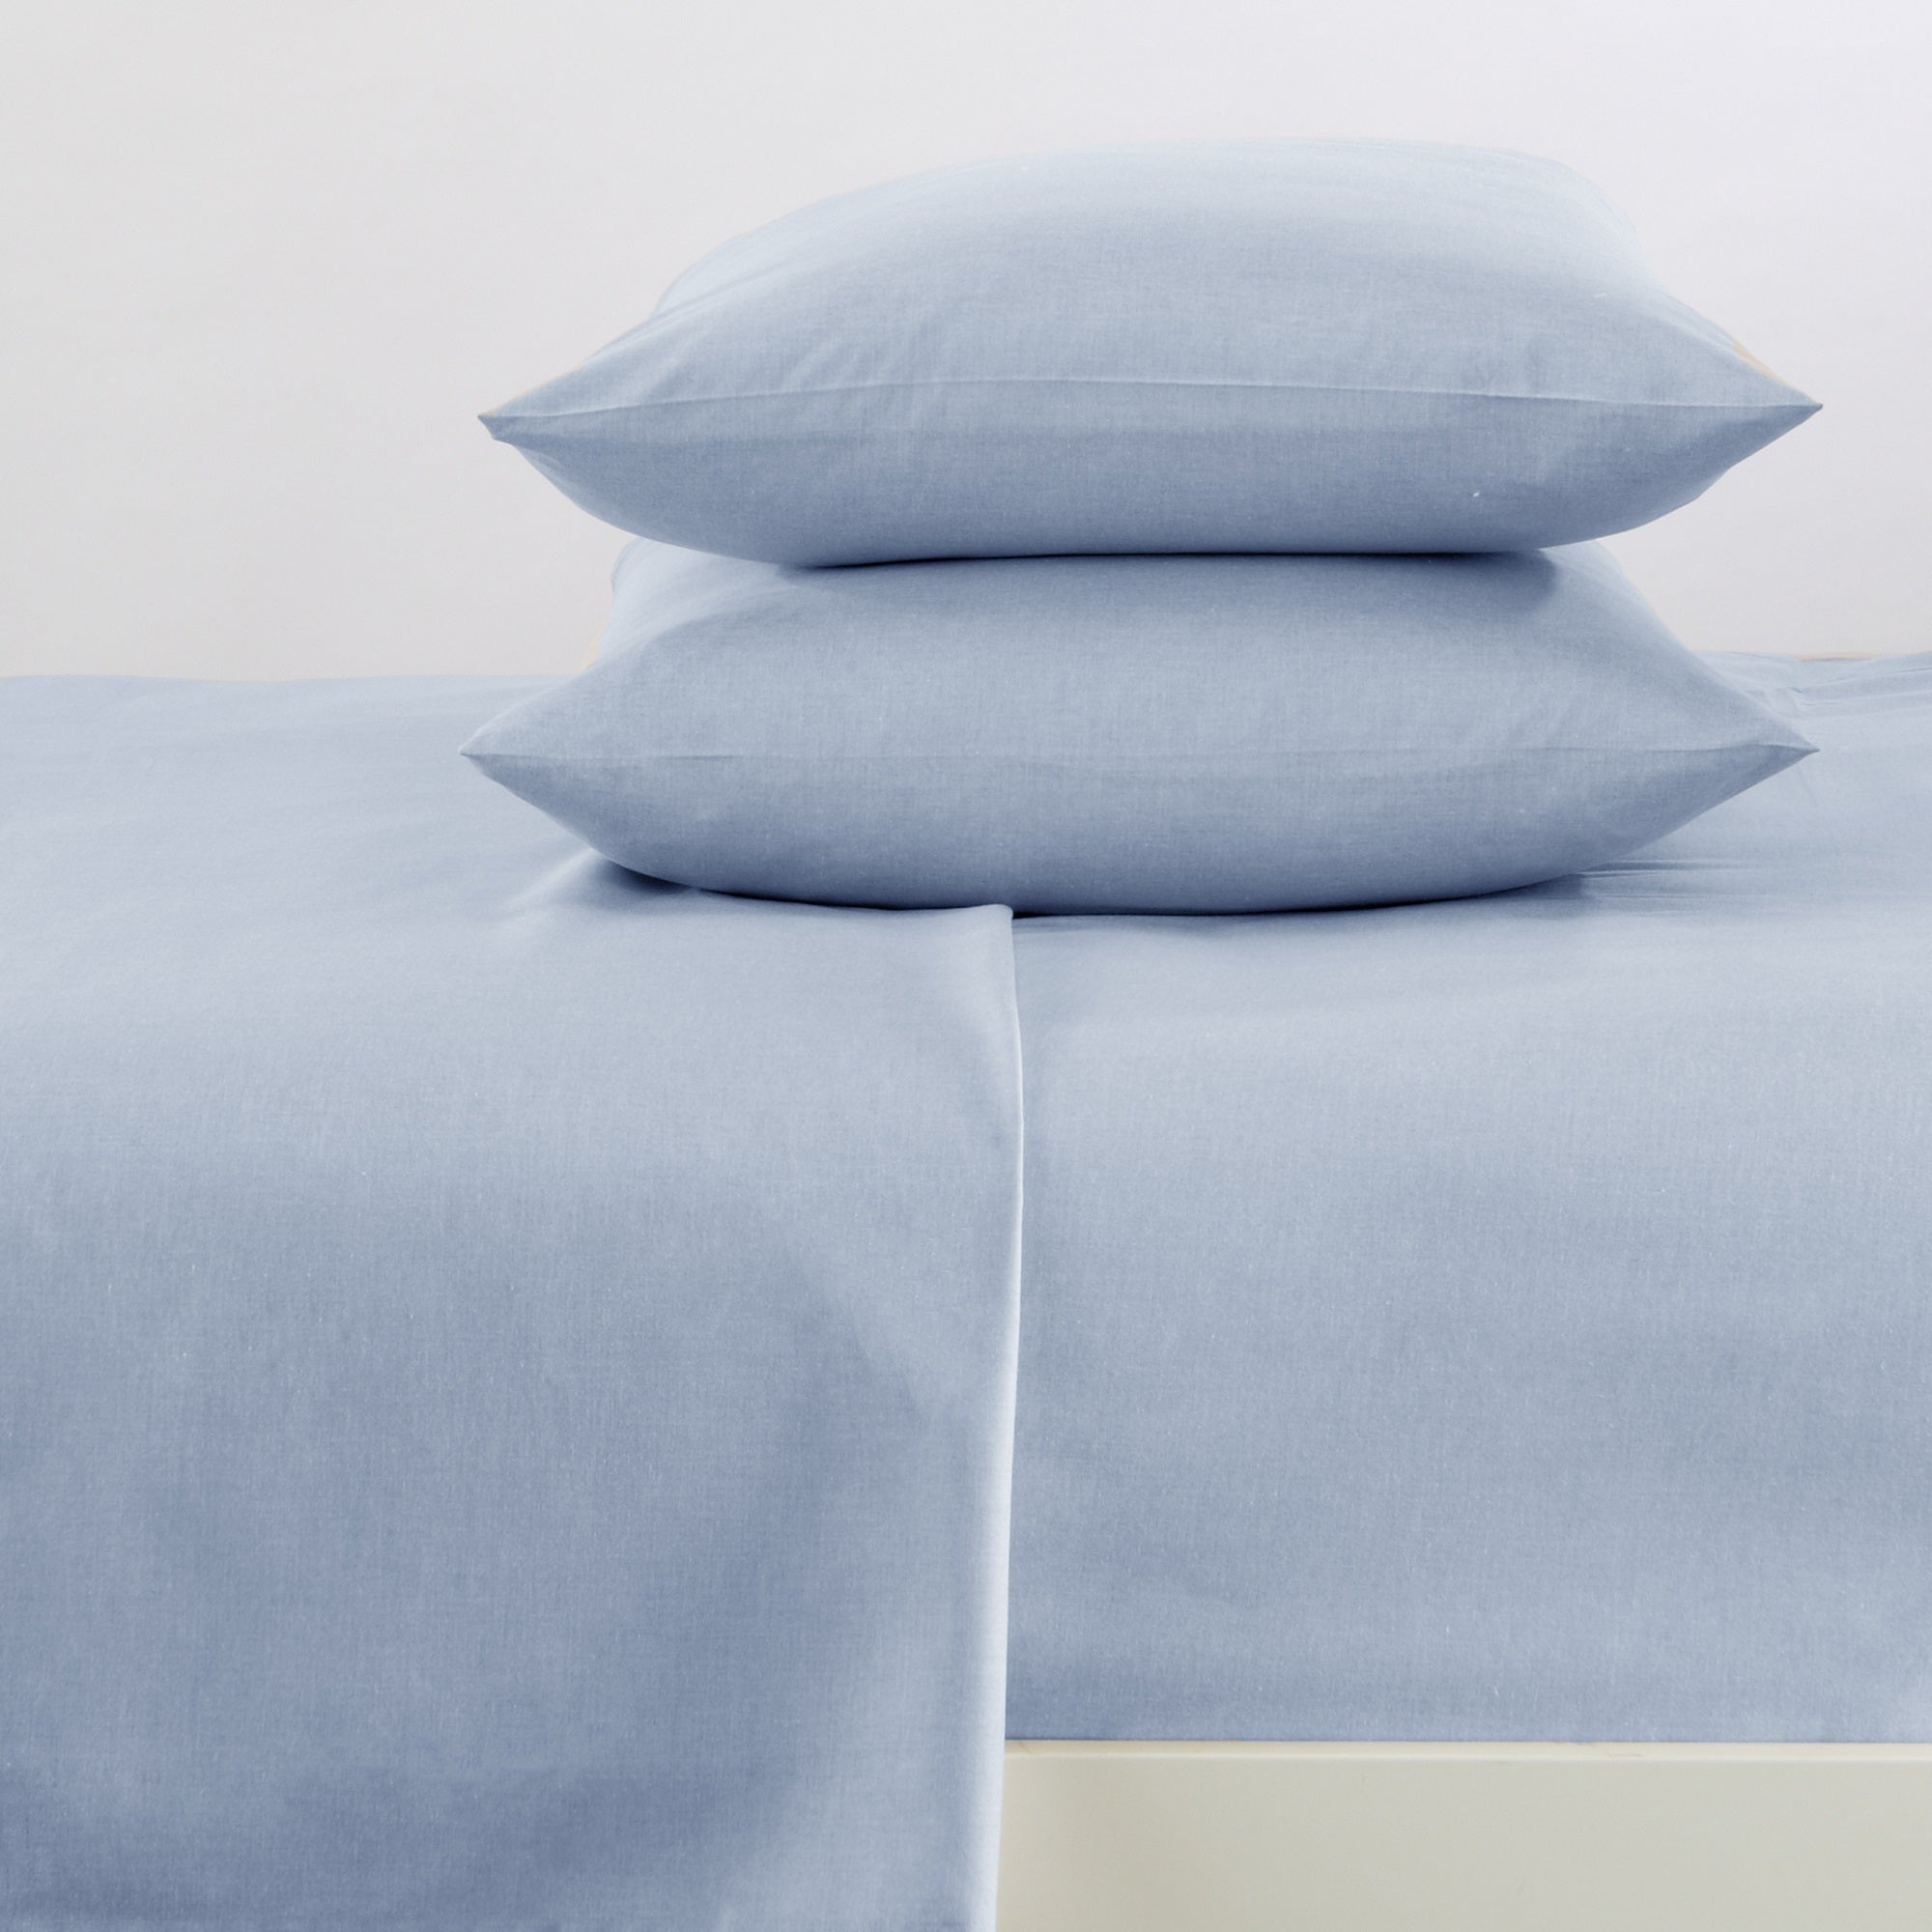 Blaire Recycled Percale Sheets